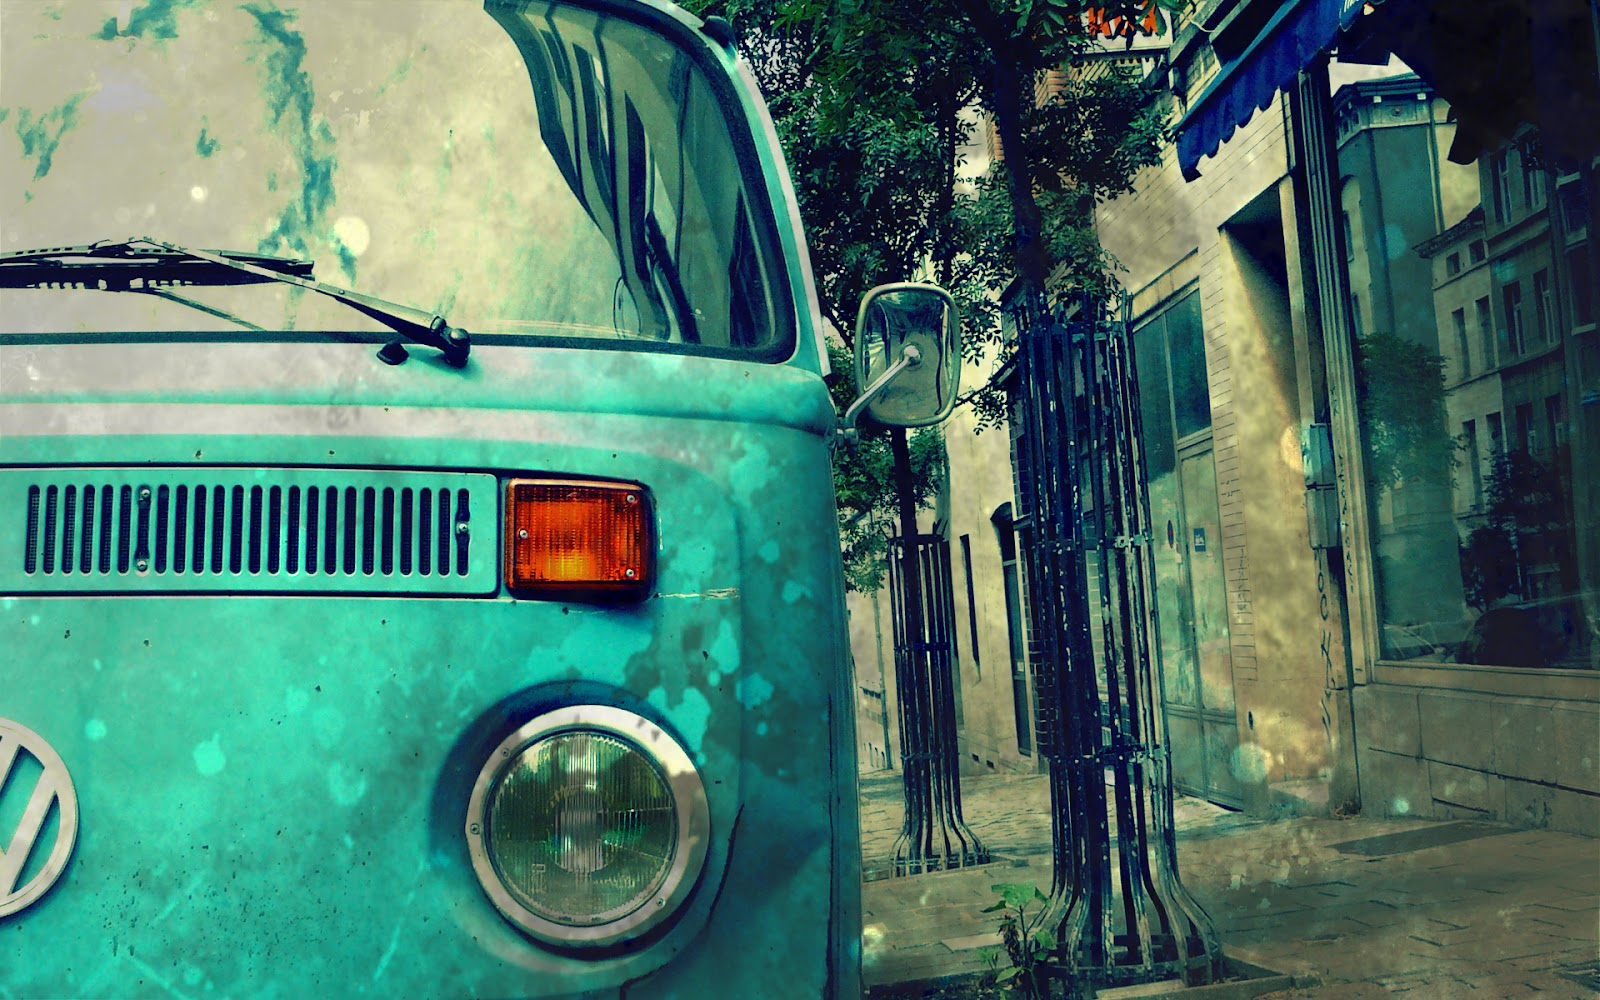 http://1.bp.blogspot.com/-3qHID5wa9KQ/T4goCAbK2eI/AAAAAAAABTw/bWU_17Z36w4/s1600/Blue_Volkswagen_Transporter_Vintage_Car_Photo_HD_Wallpaper.jpg